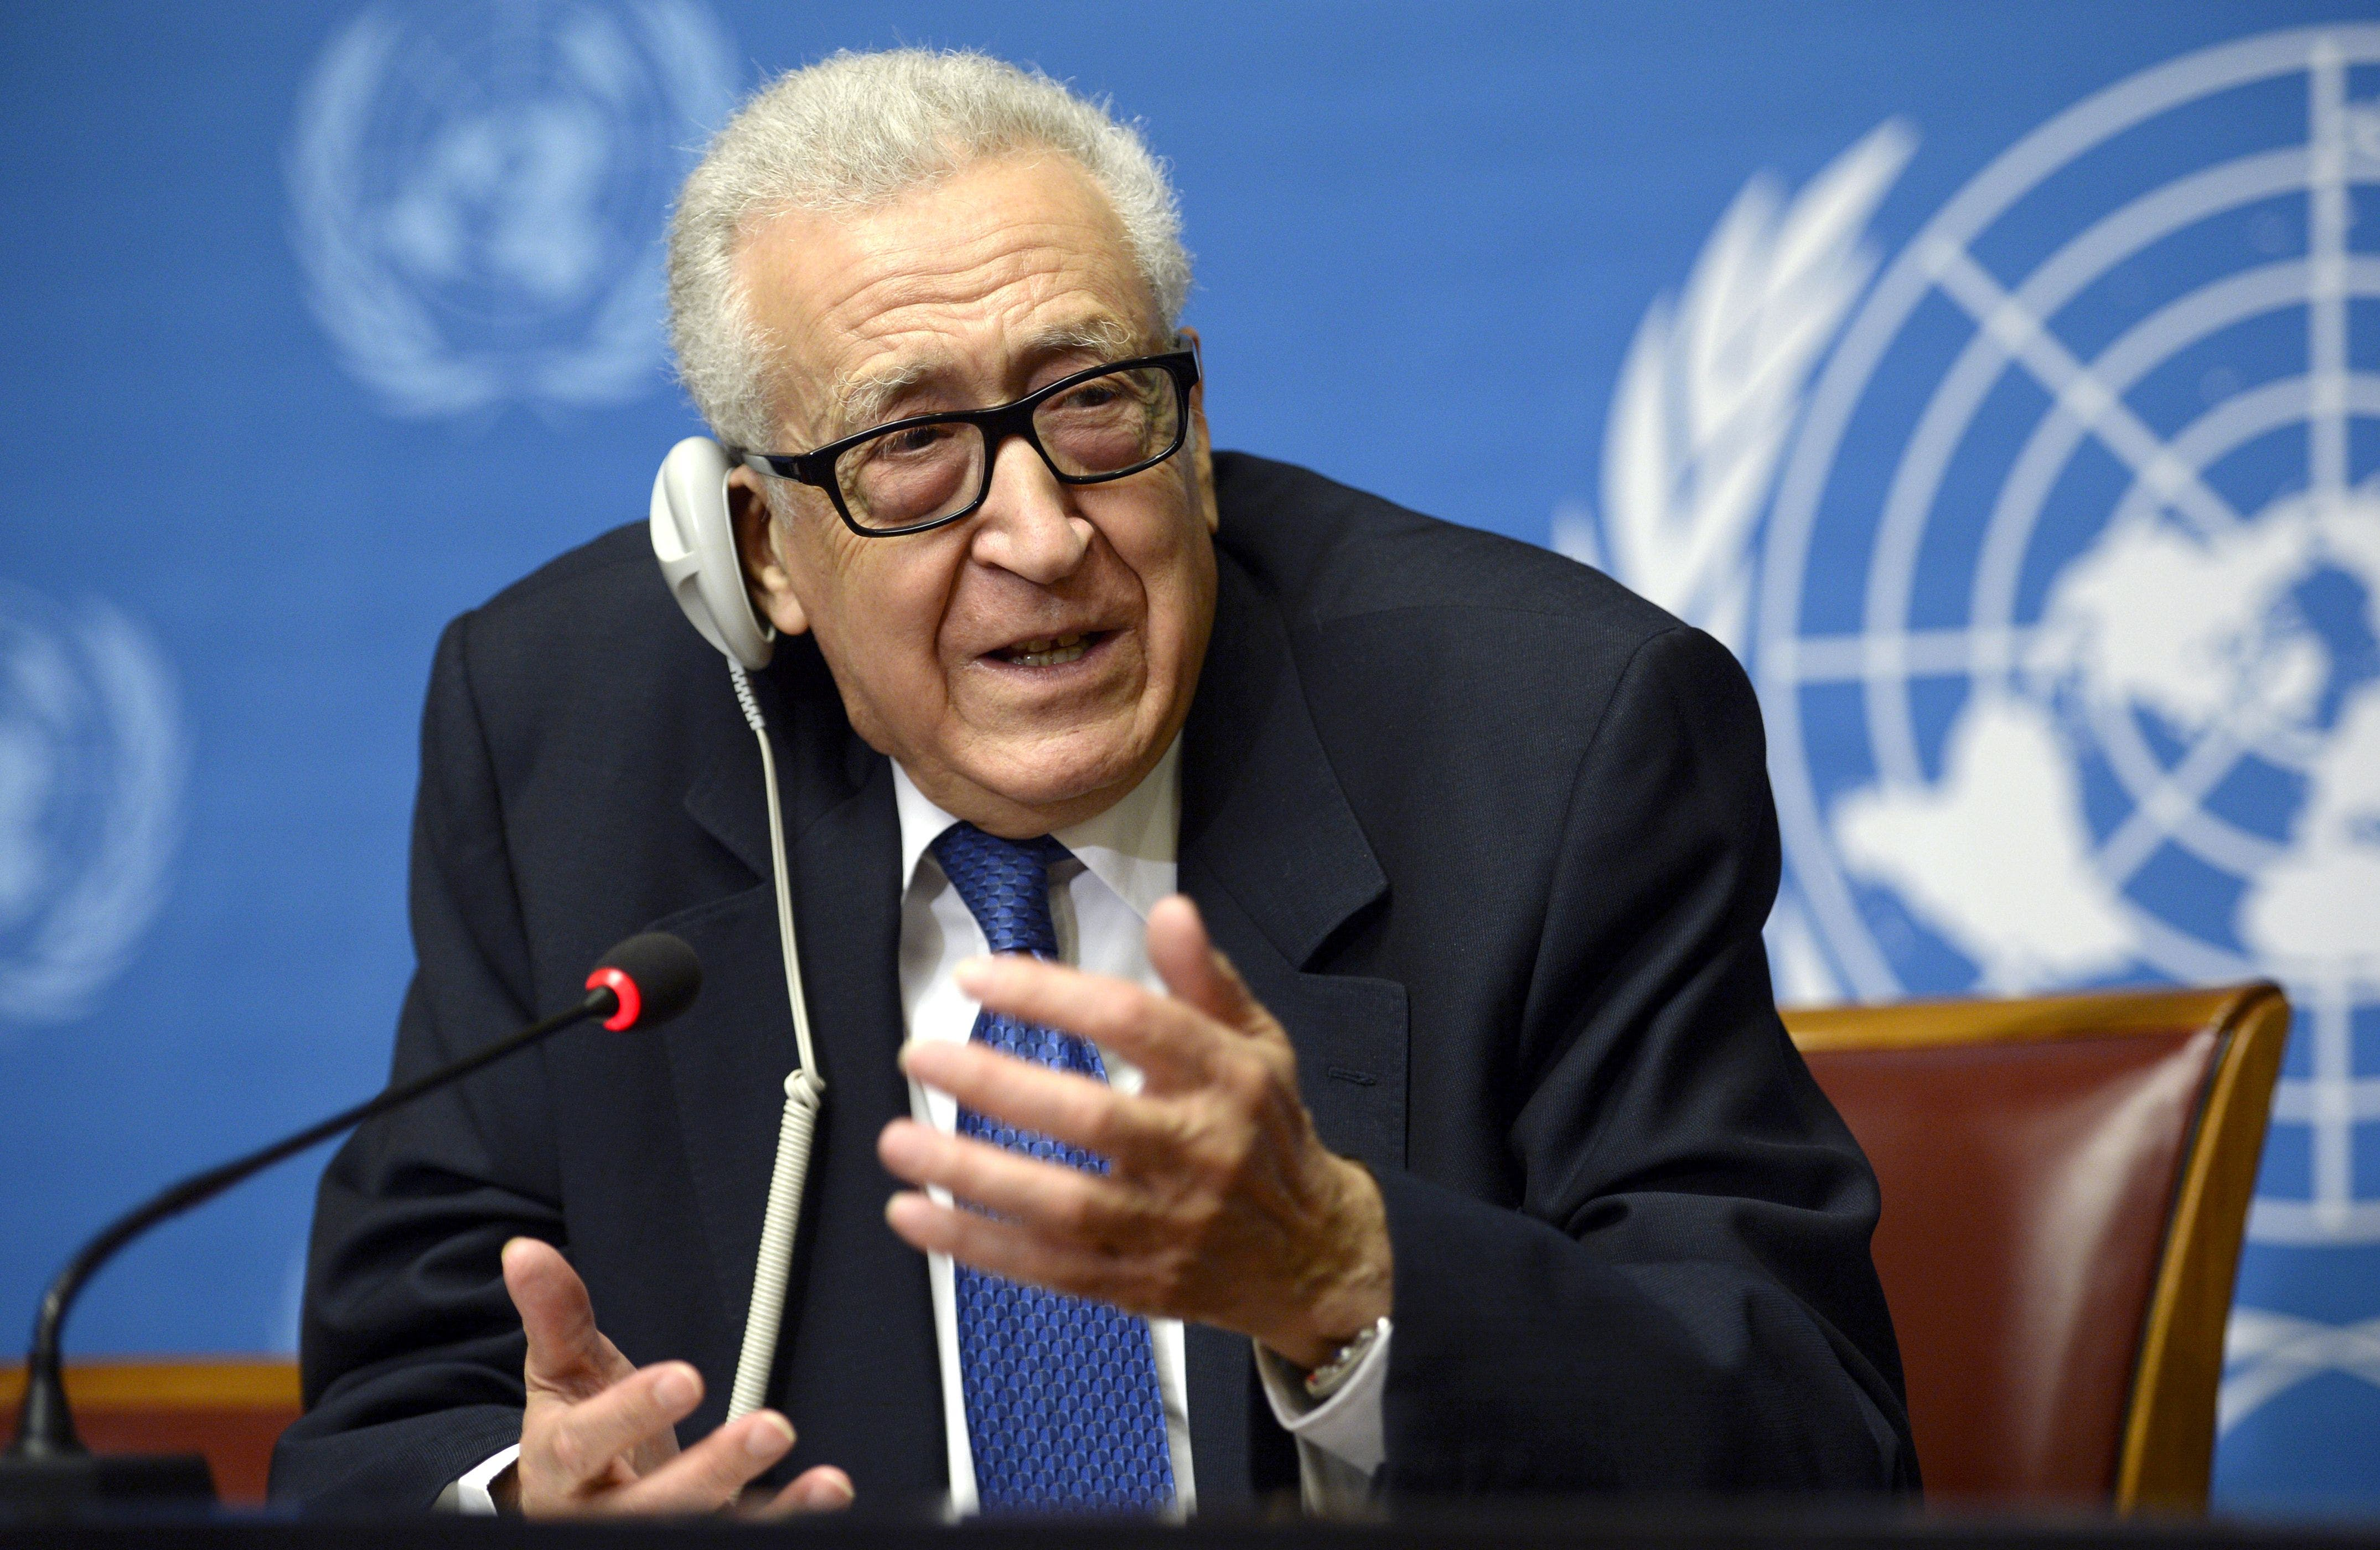 U.N. mediator Lakhdar Brahimi gestures as he talks during a press conference on the Syrian peace talks at the United Nations headquarters in Geneva on February 15, 2014. (AFP)